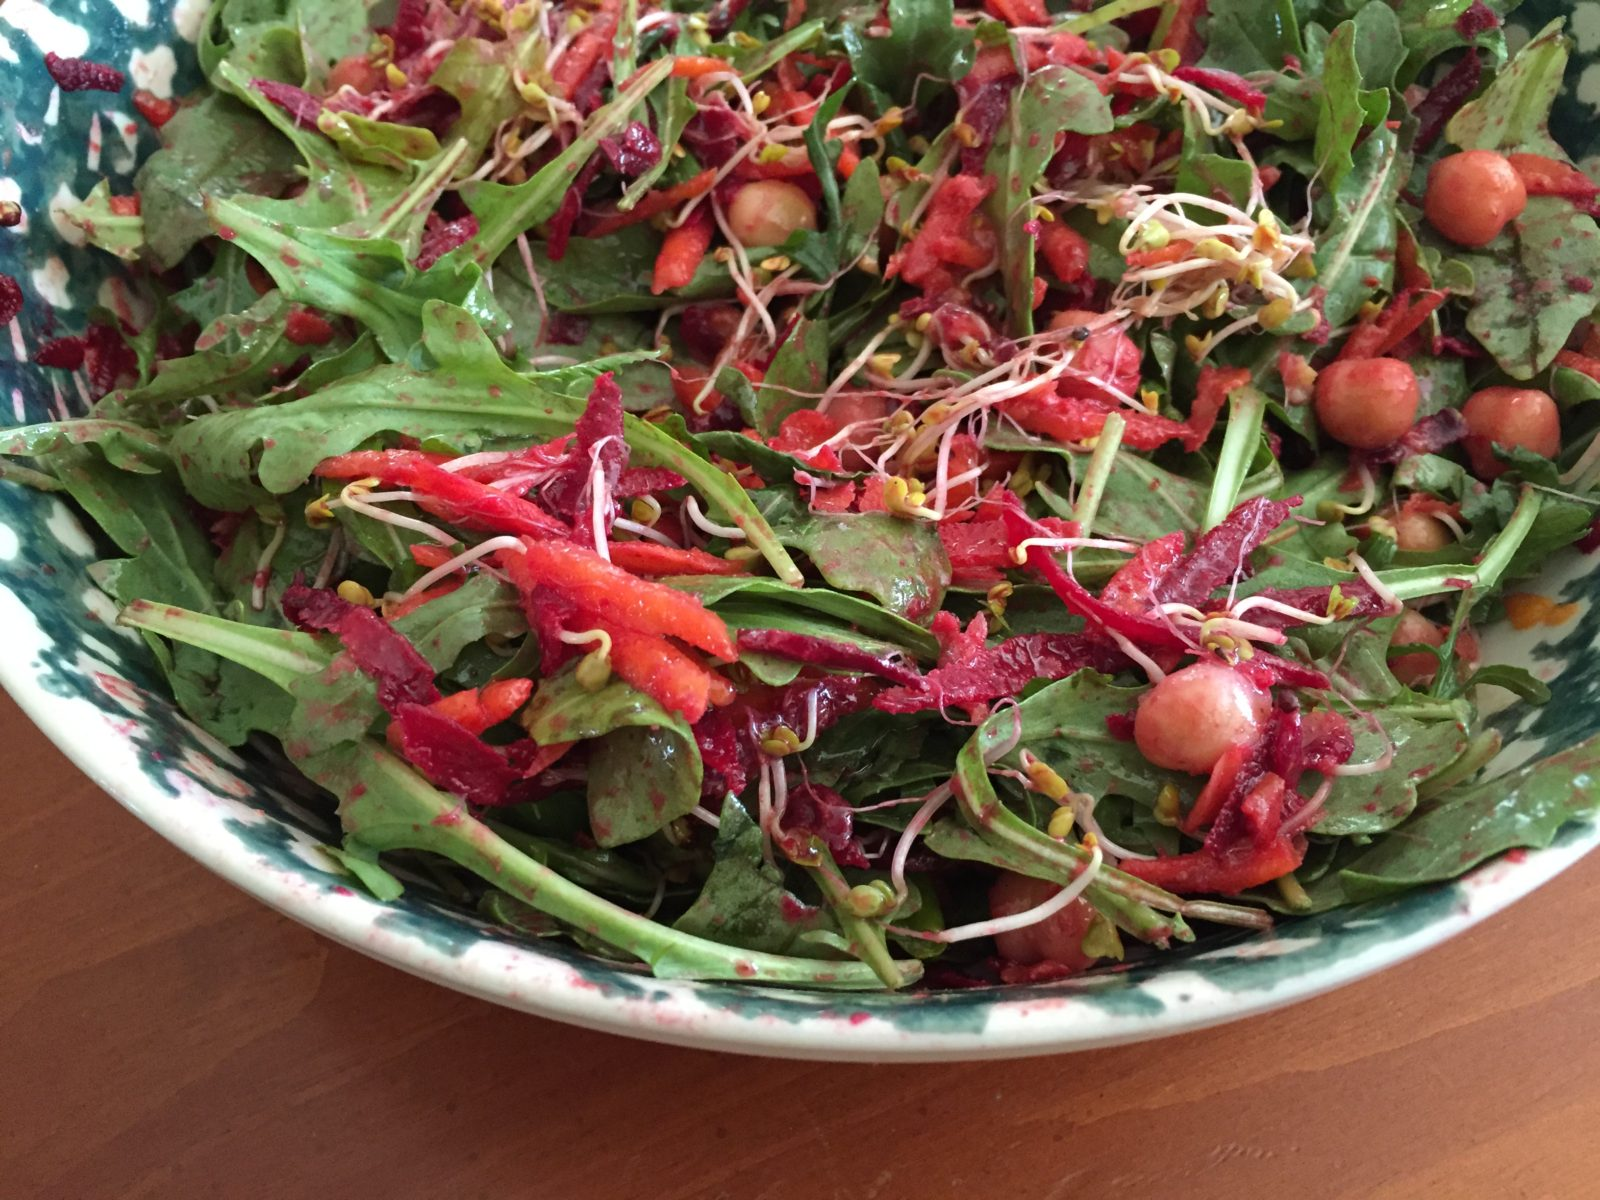 Image of salad with arugula, beets, chick peas